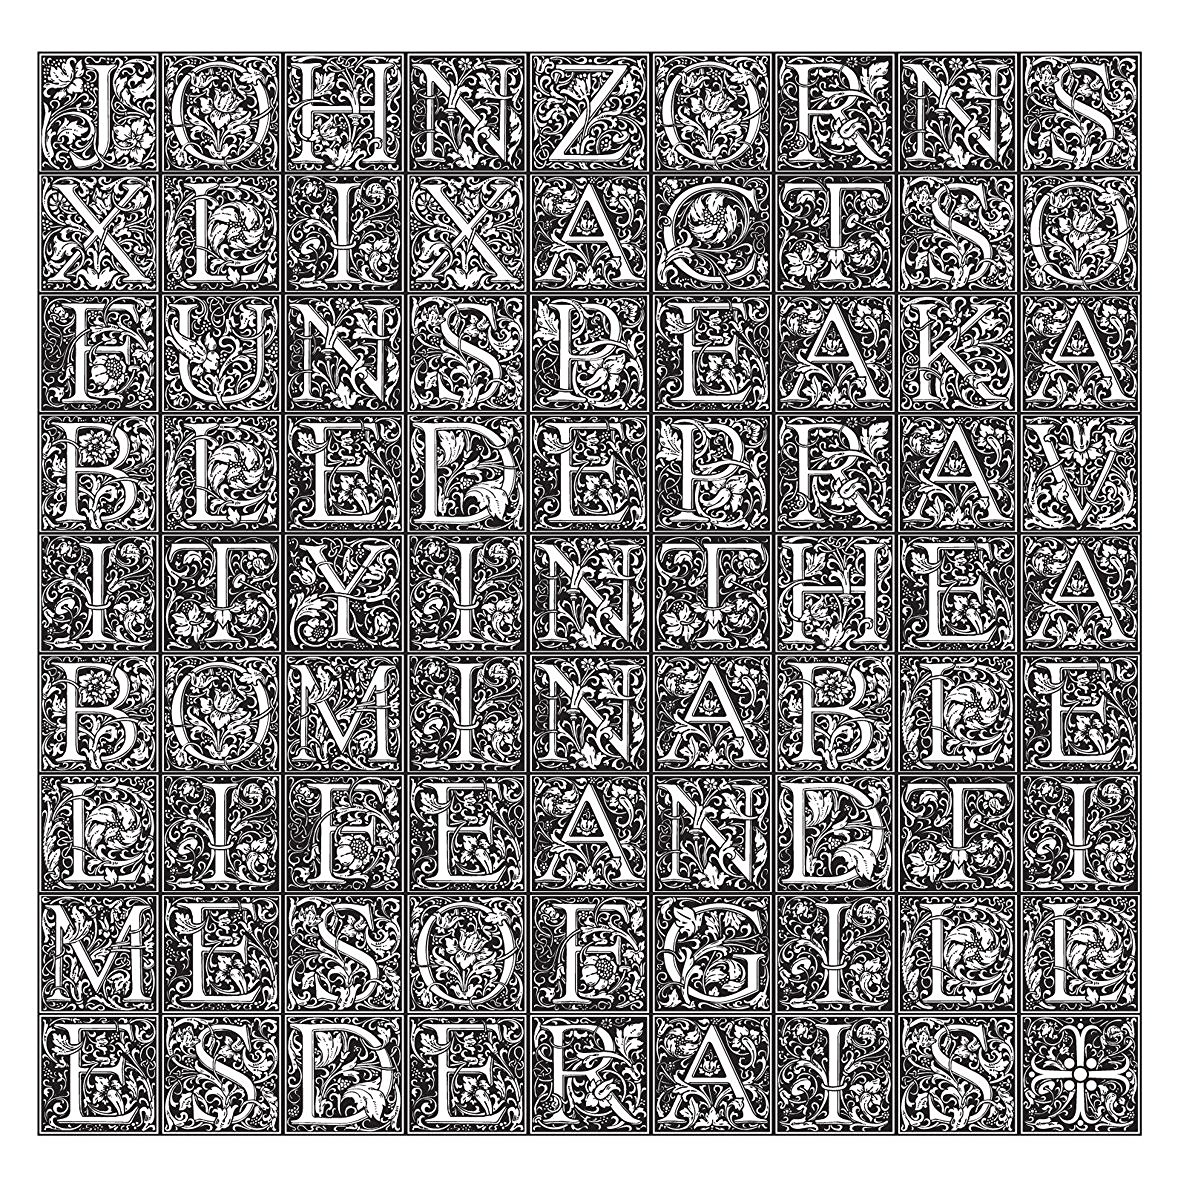 JOHN ZORN'S SIMULACRUM - 49 Acts Of Unspeakable Depravity In The Abominable Life And Times Of Gilles De Rais cover